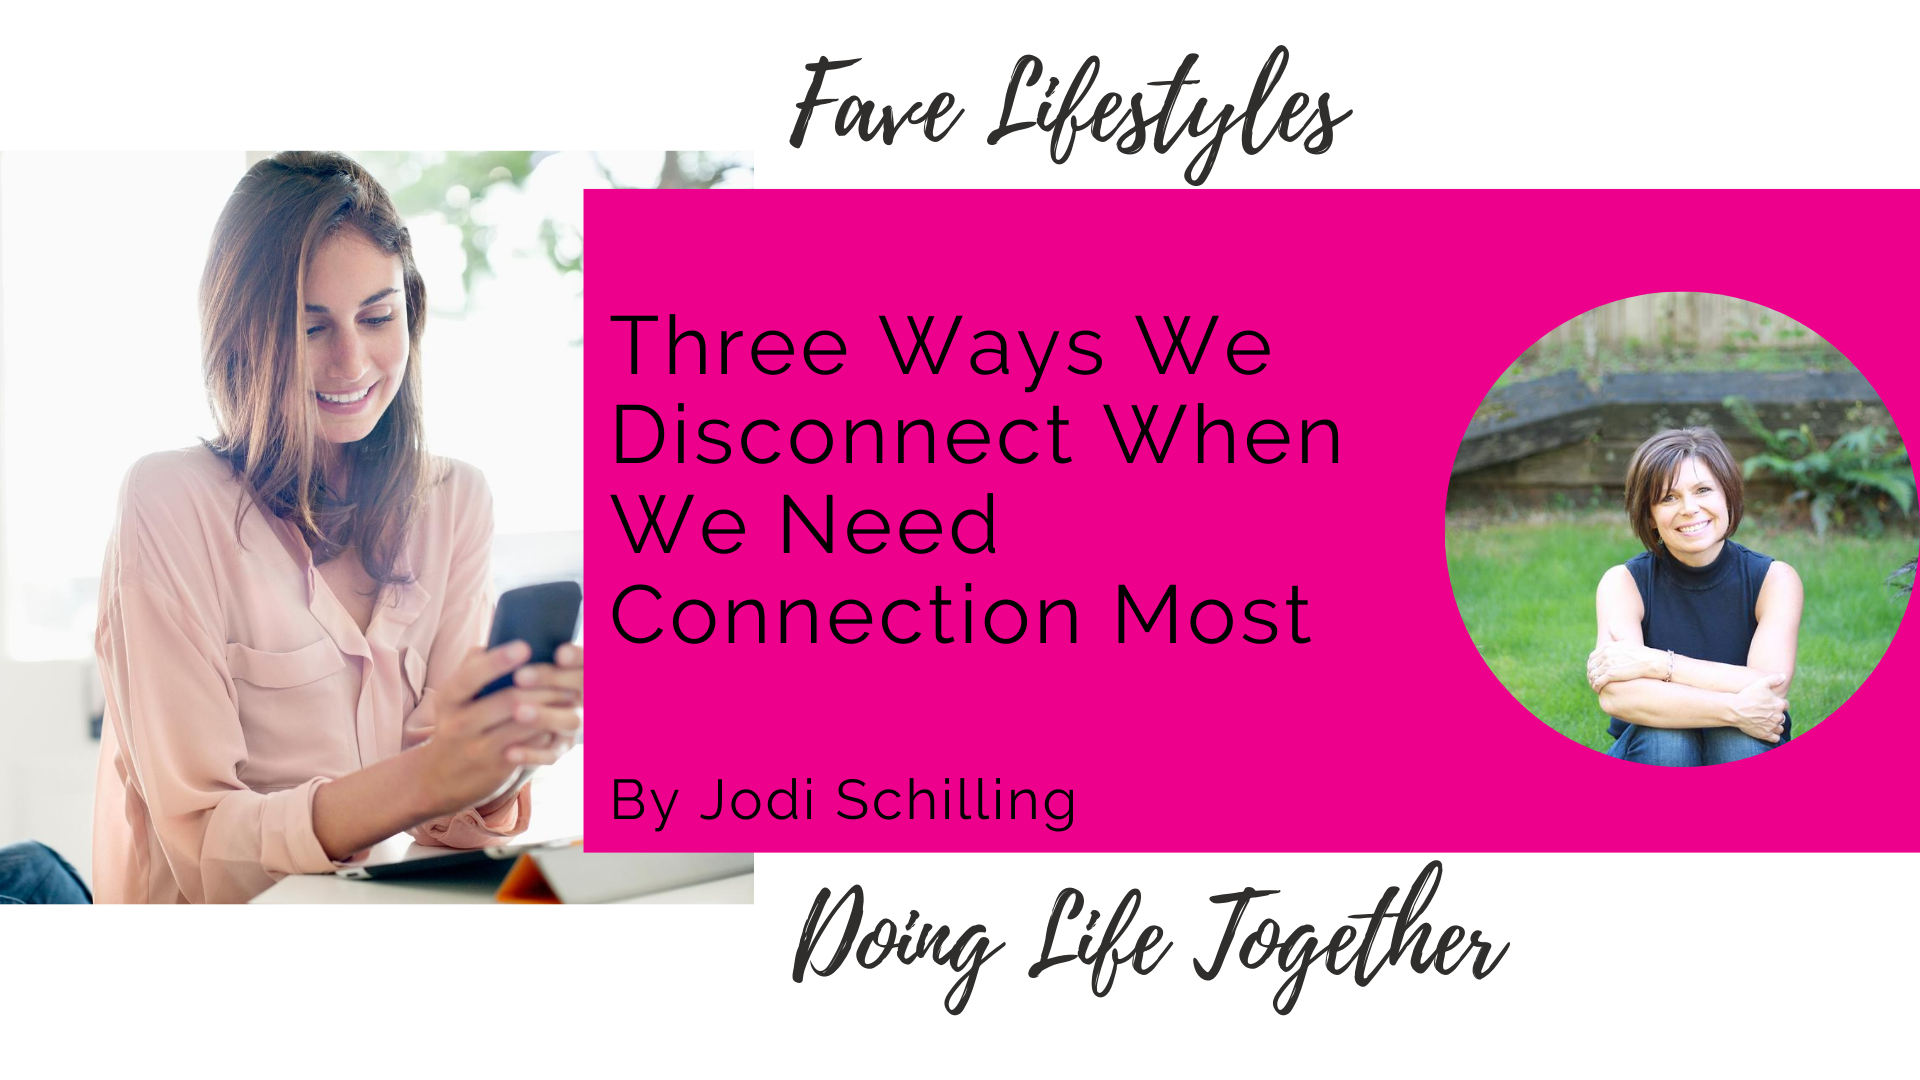 3 Ways We Disconnect When We Need Connection Most